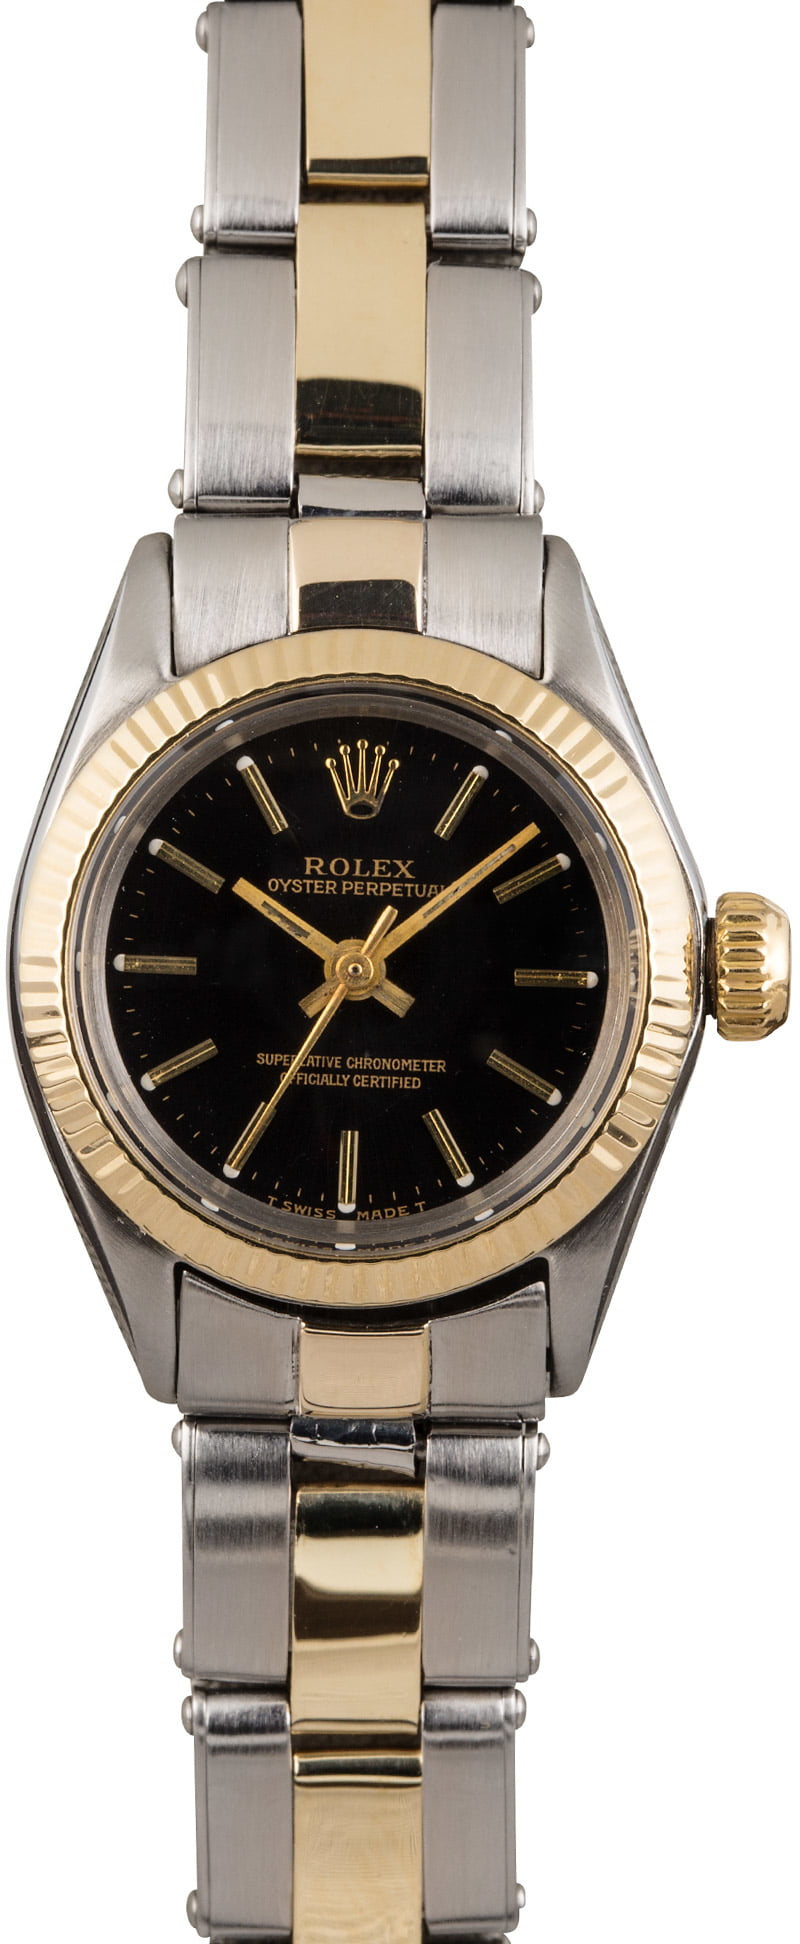 Buy vintage rolex lady oyster perpetual 6618 bob 39 s watches sku 123885 for Vintage rolex oyster